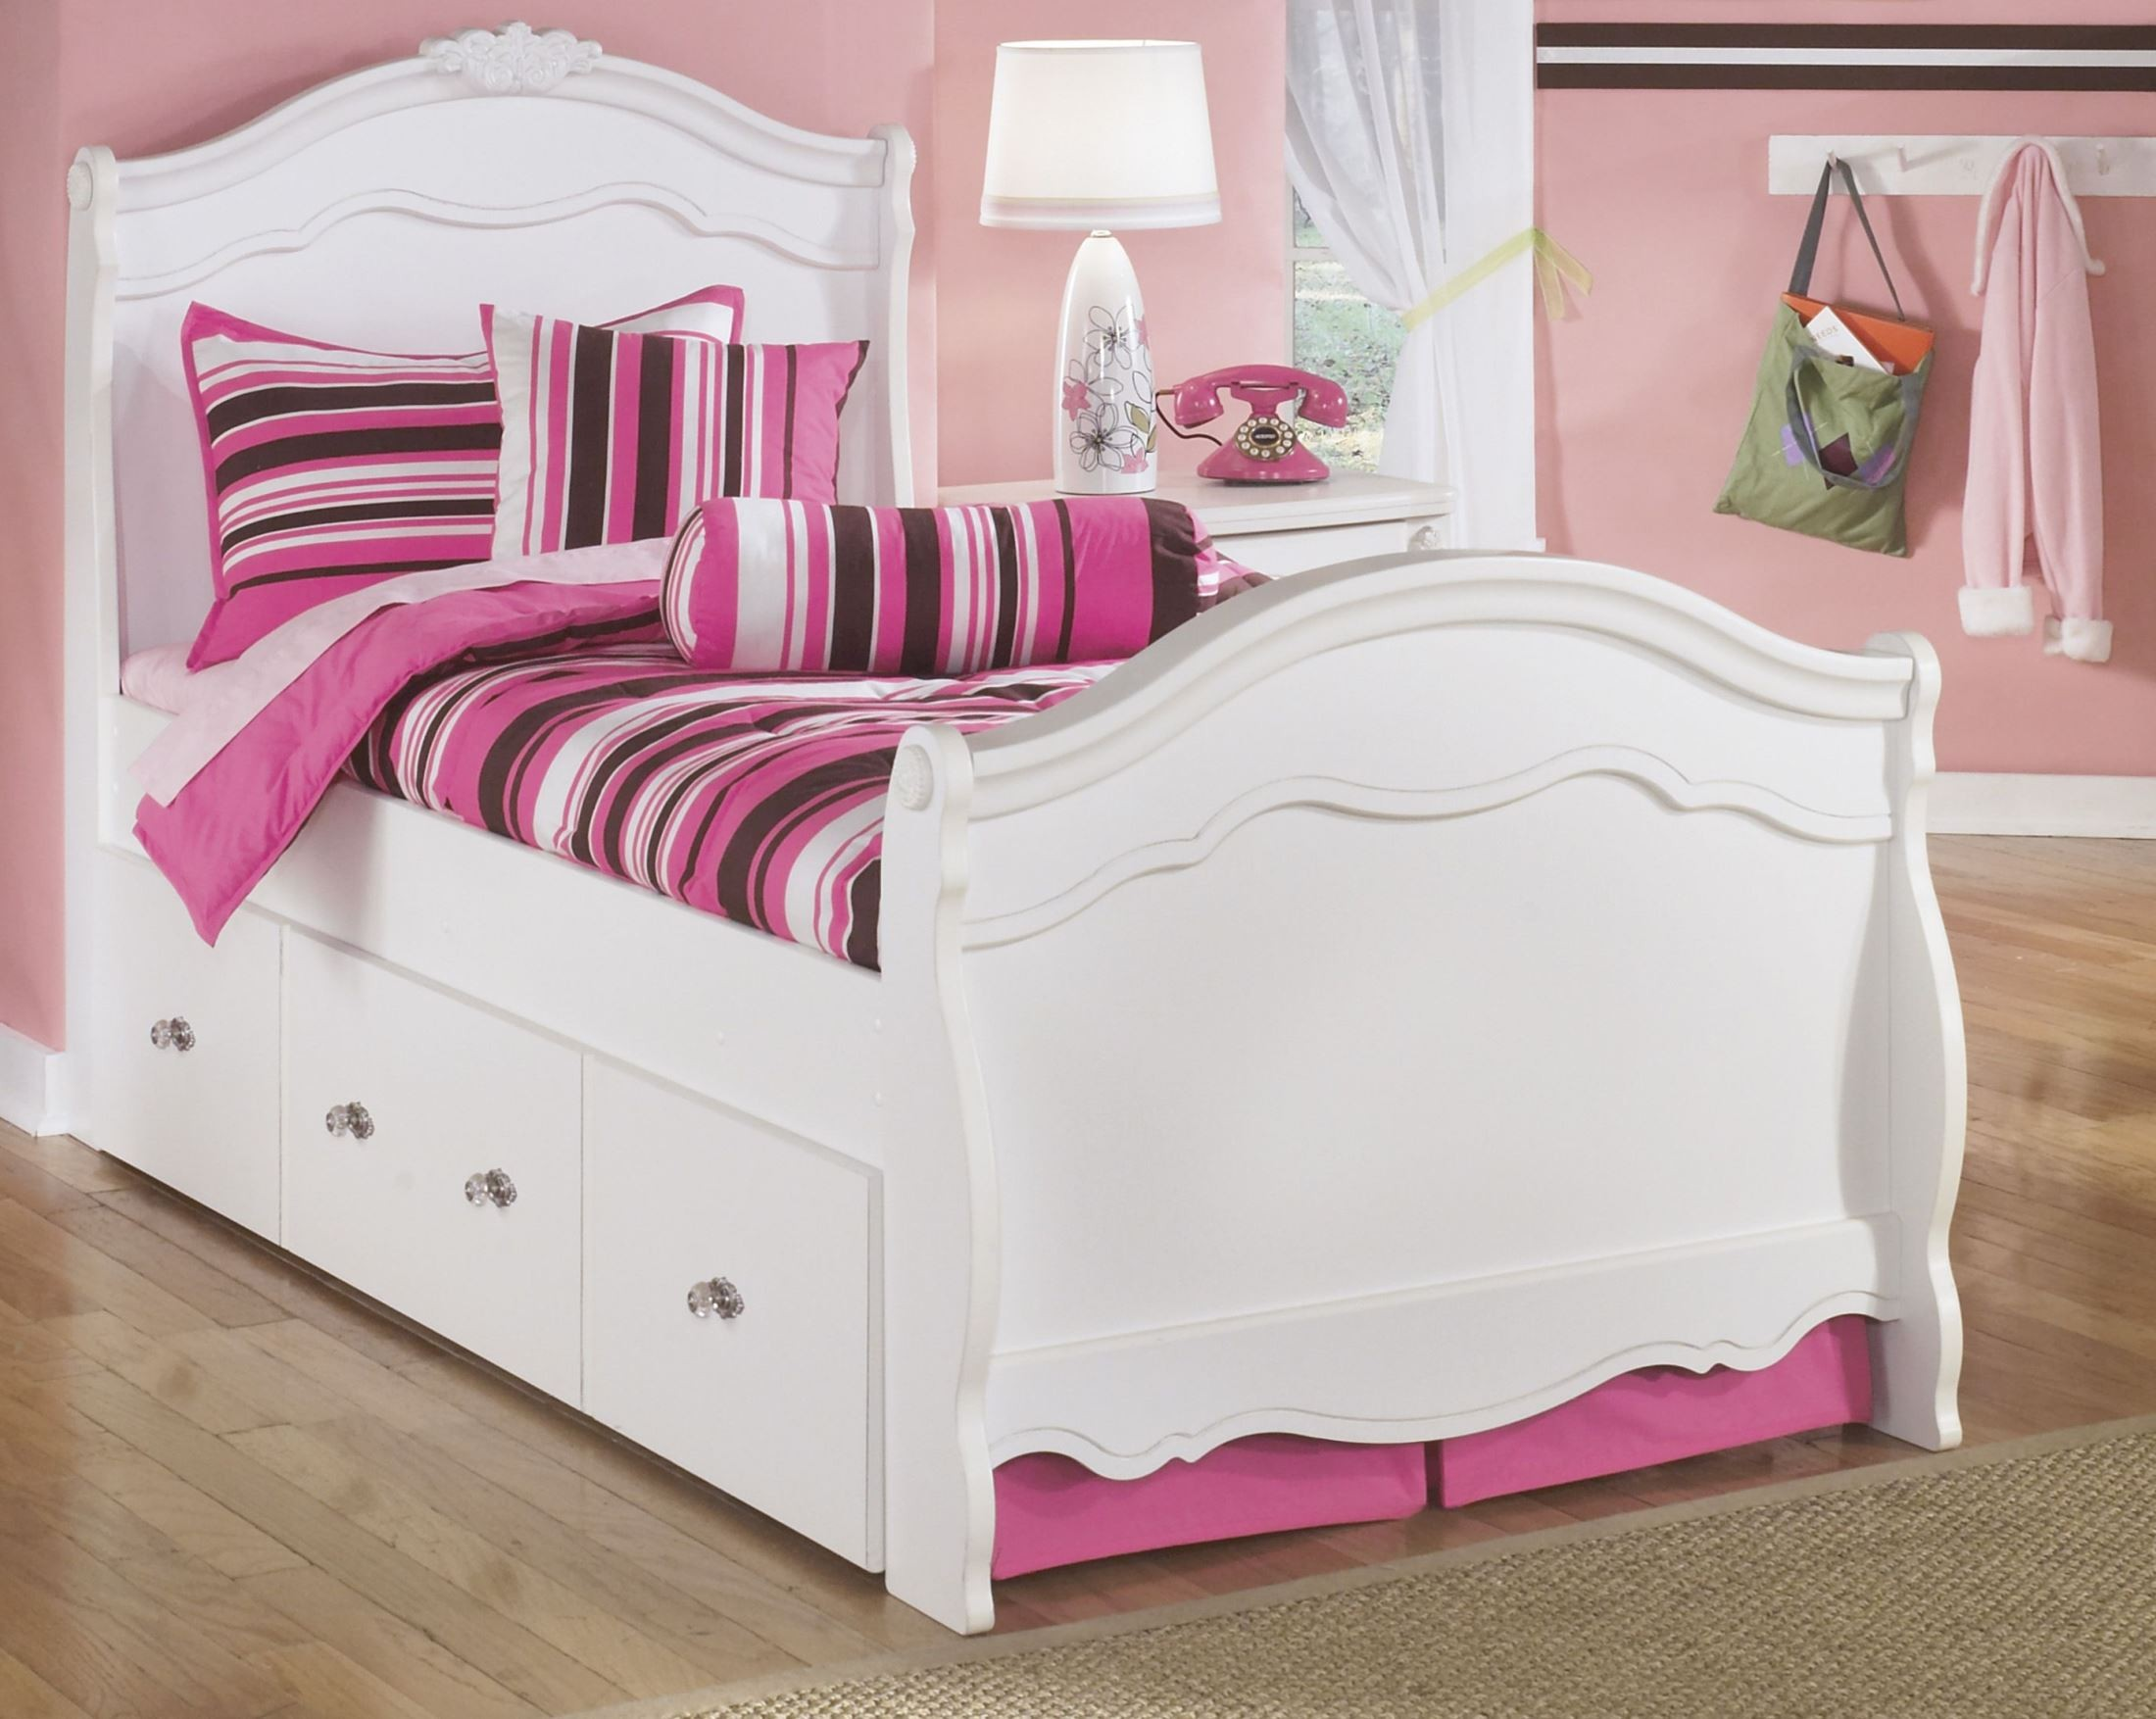 Exquisite youth sleigh bedroom set from ashley b188 62n for Youth bedroom furniture sets